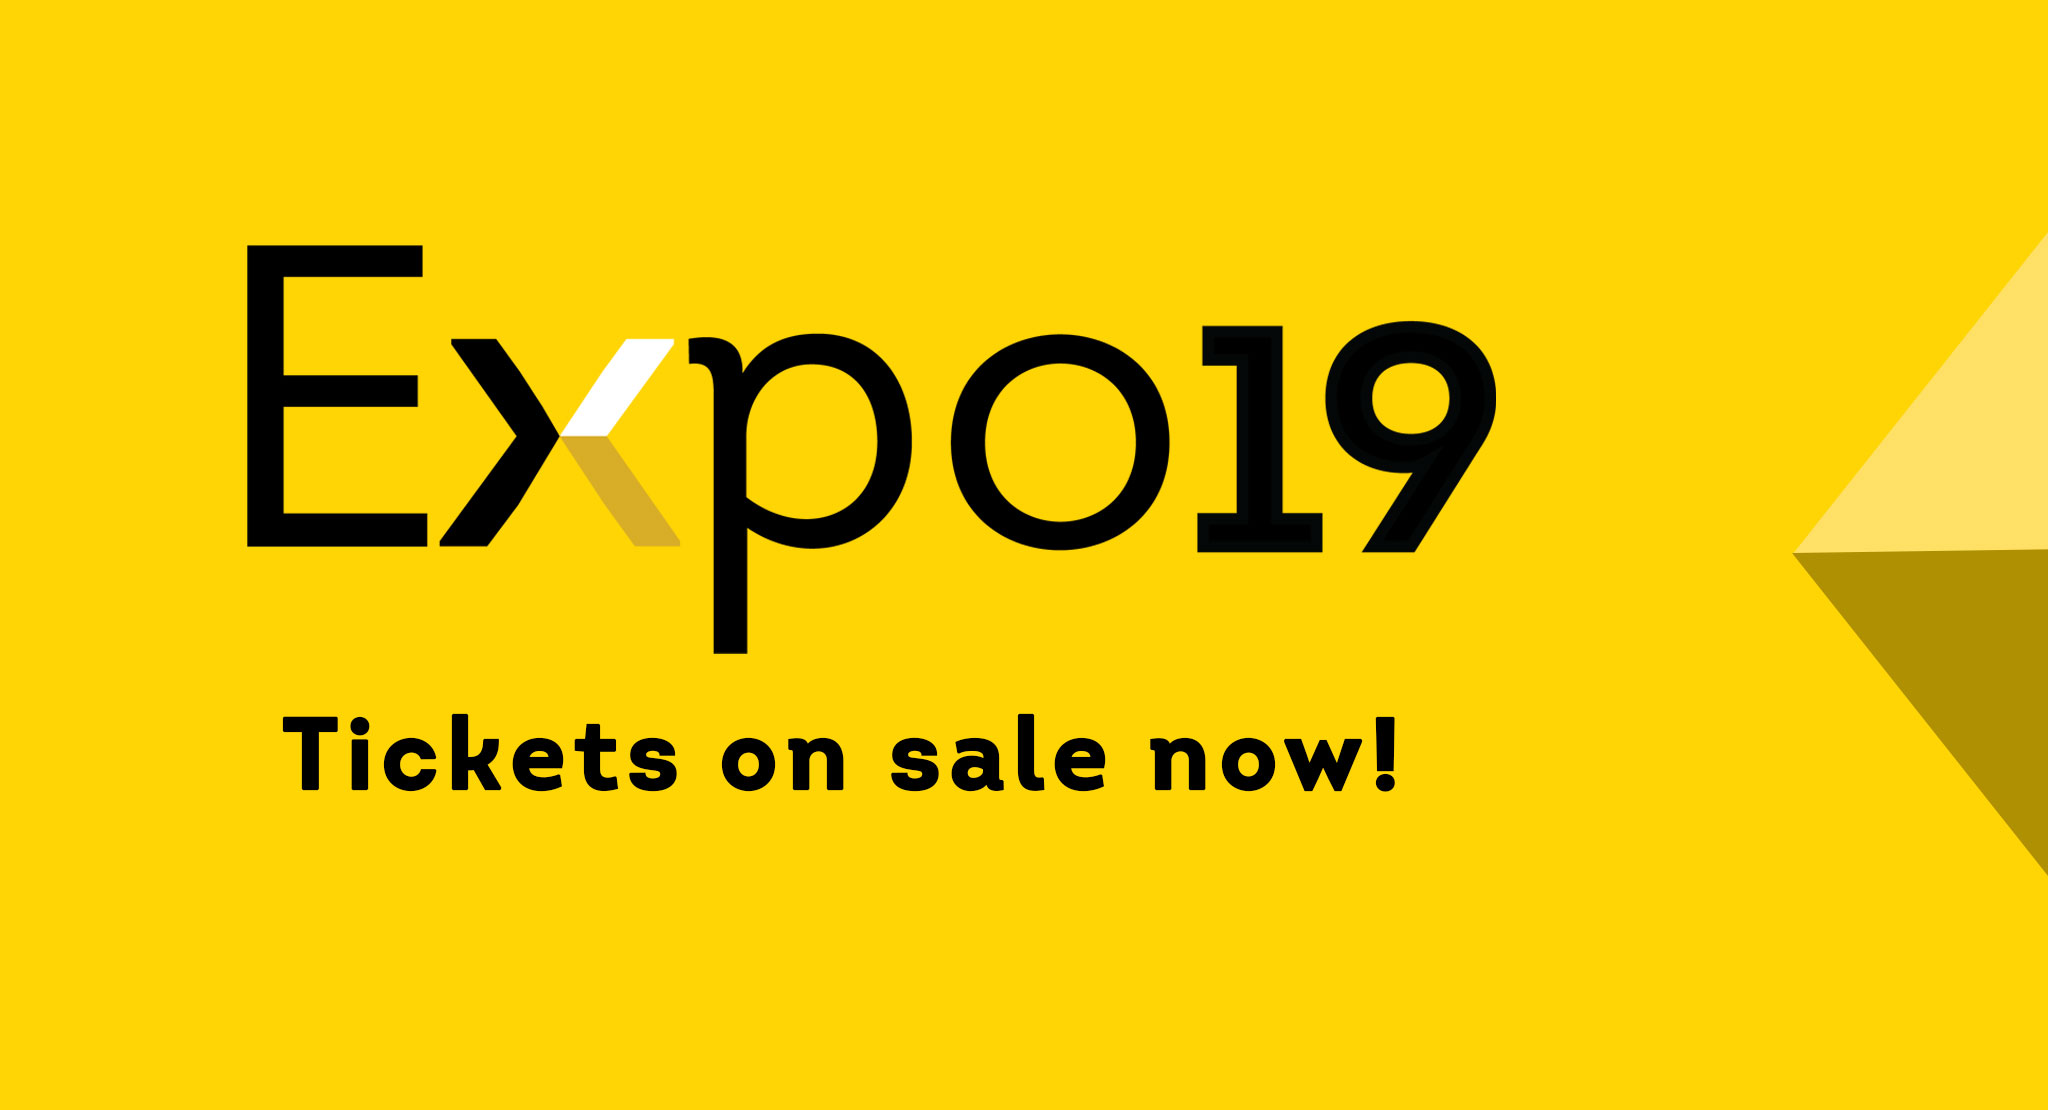 Bluegfx's Expo19 Tickets - On Sale Now!